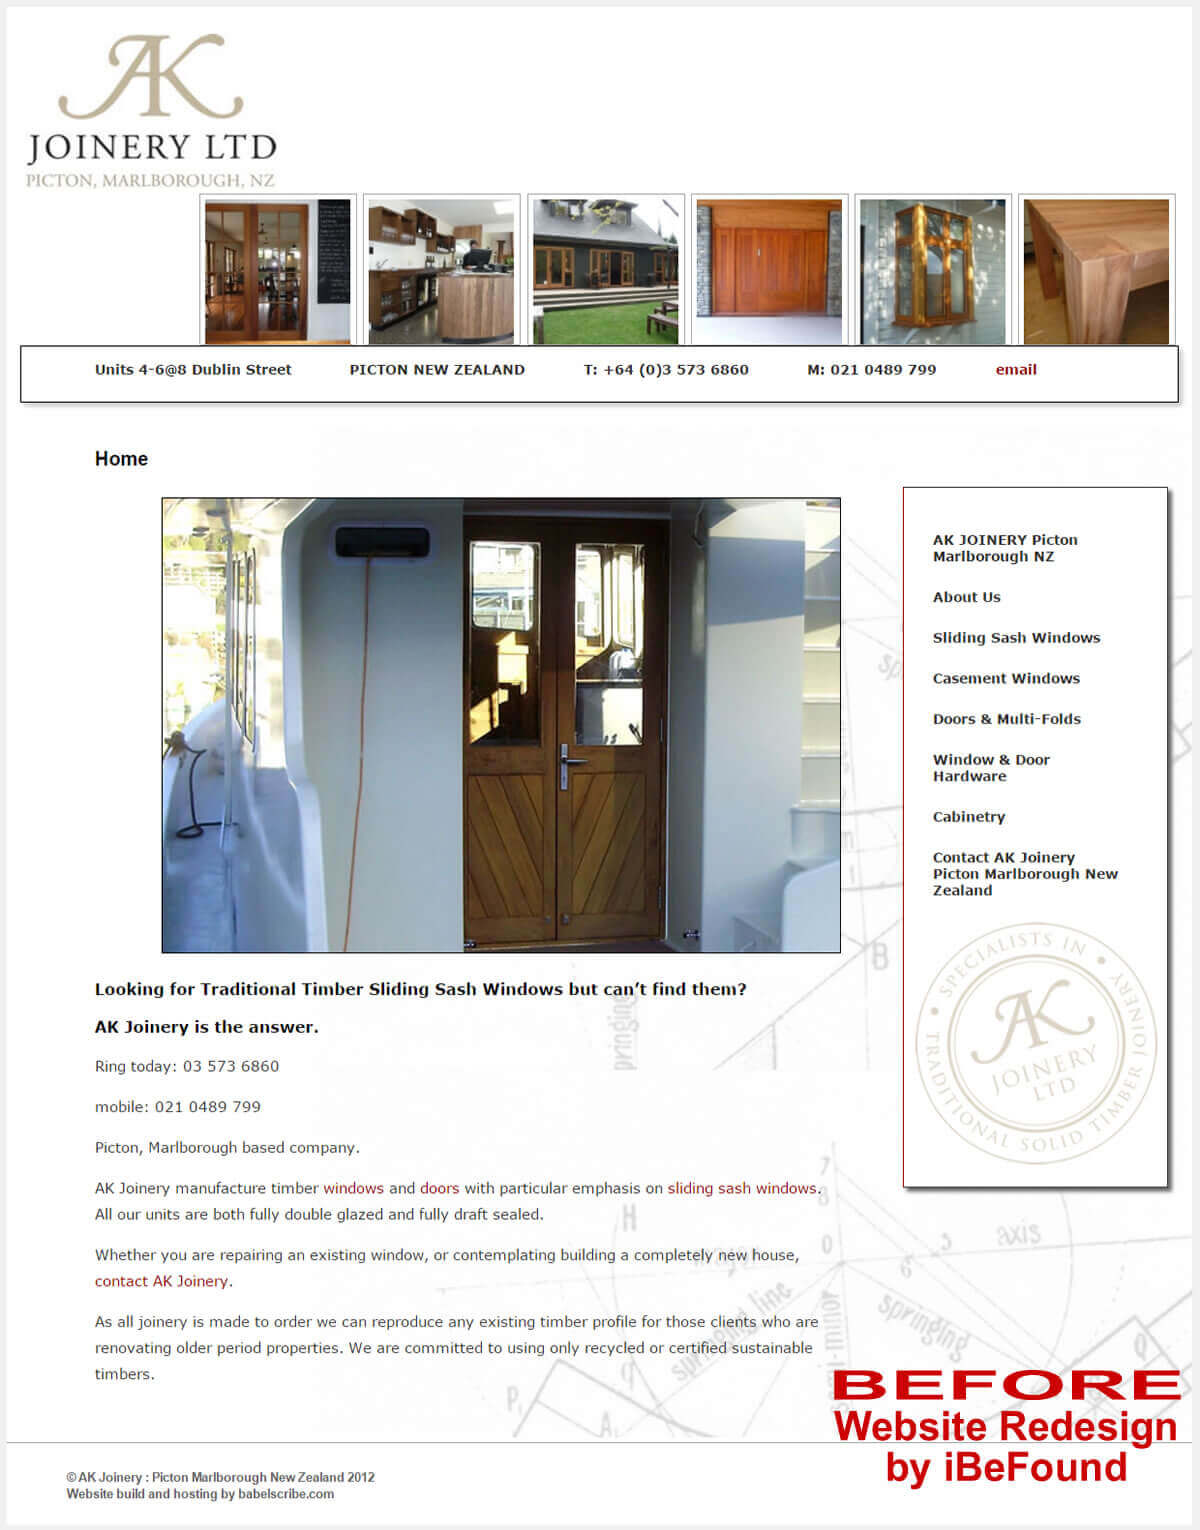 Homepage Of AK Joinery Before Website Redesign By IBeFound Digital Marketing